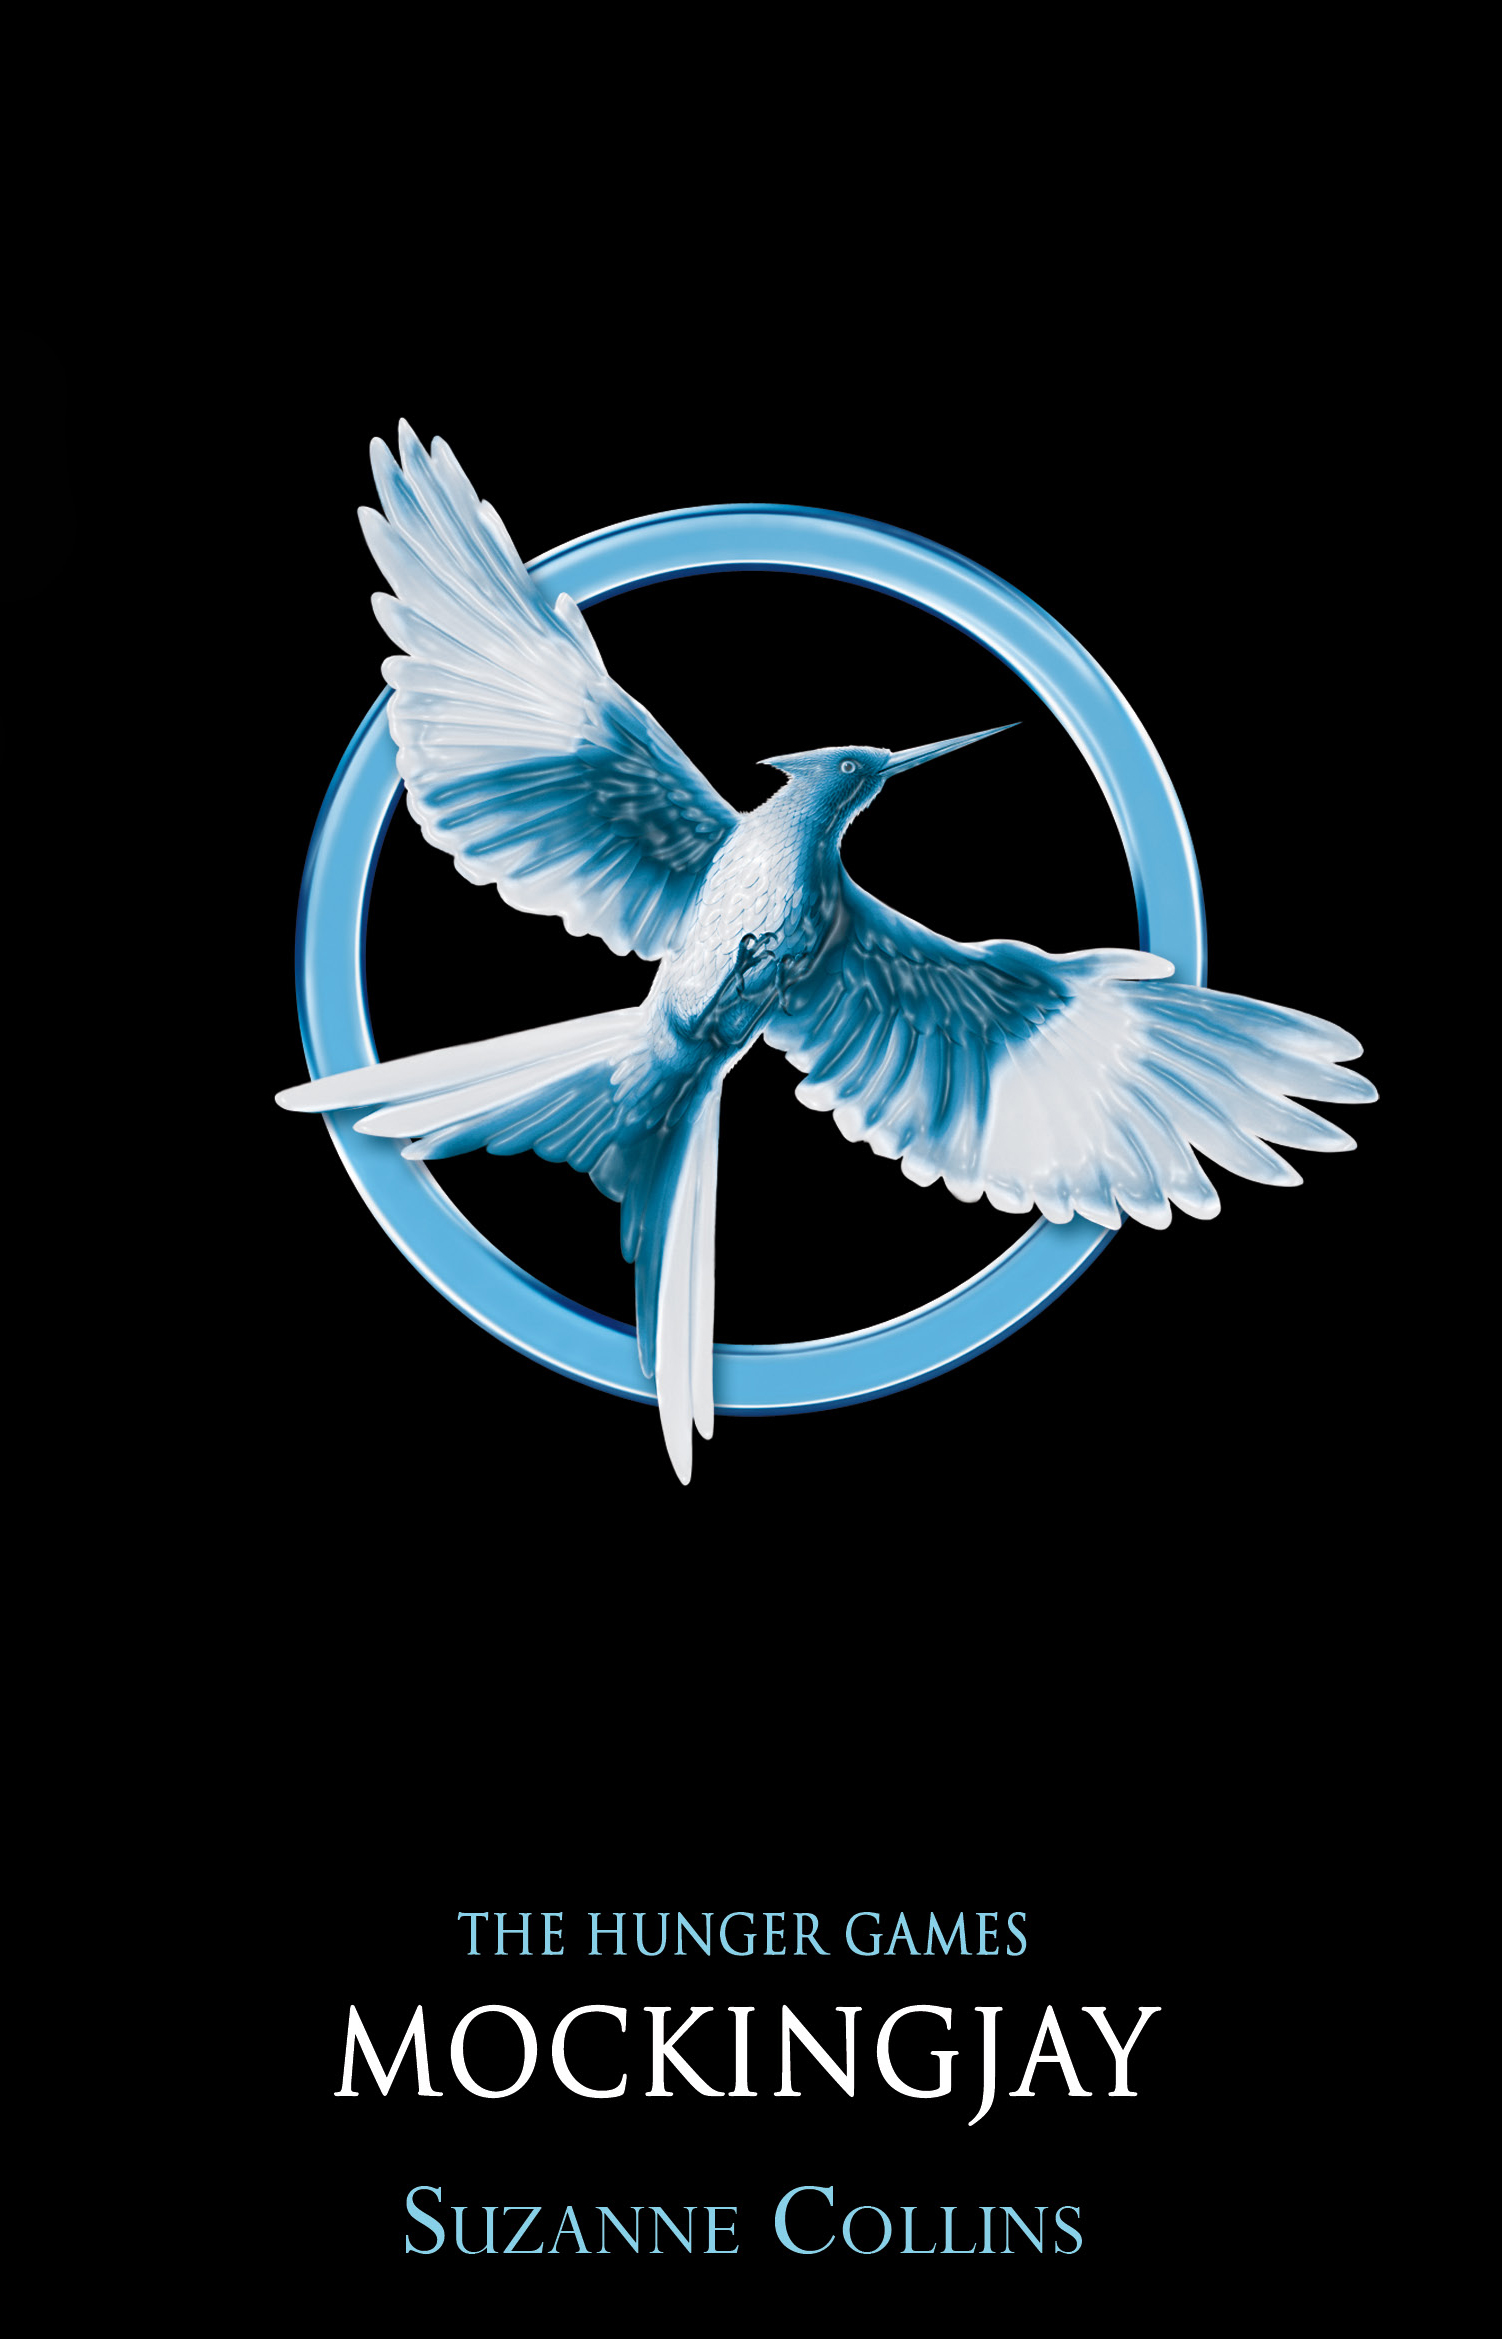 The Hunger Games | Scholastic Media Room |The Hunger Games Mockingjay Book Cover